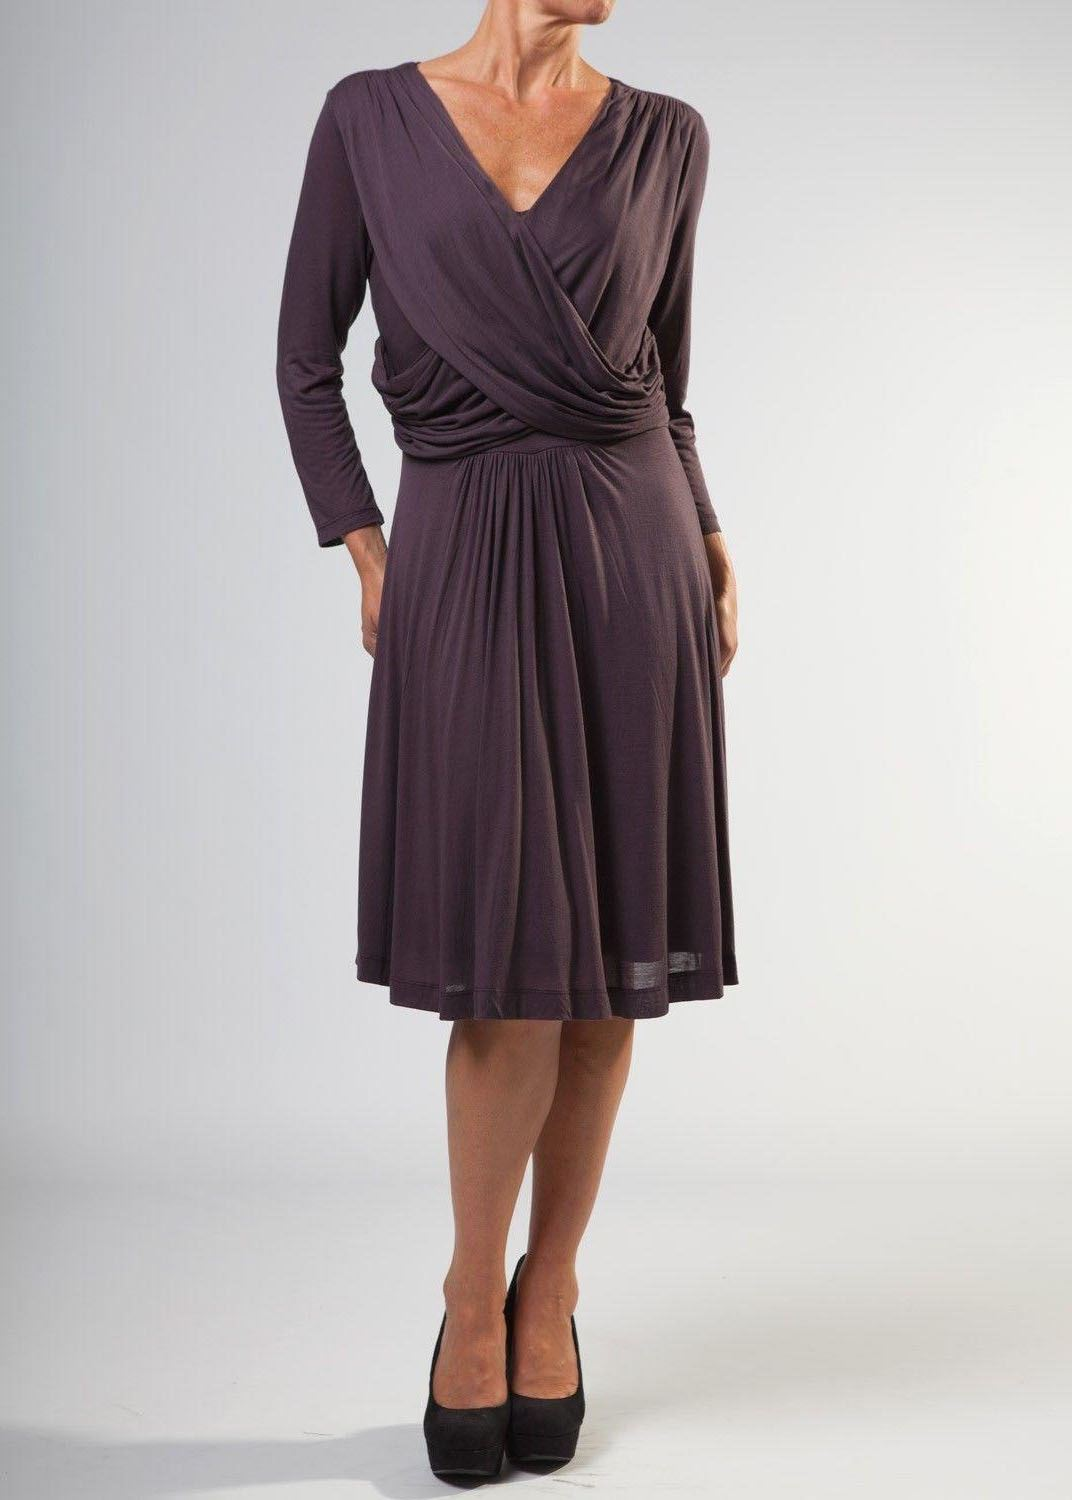 Ex-French-Connection-Wrap-Dress-Jersey-Stretch-Long-Sleeve-Skater-Dress-Size-XS thumbnail 10